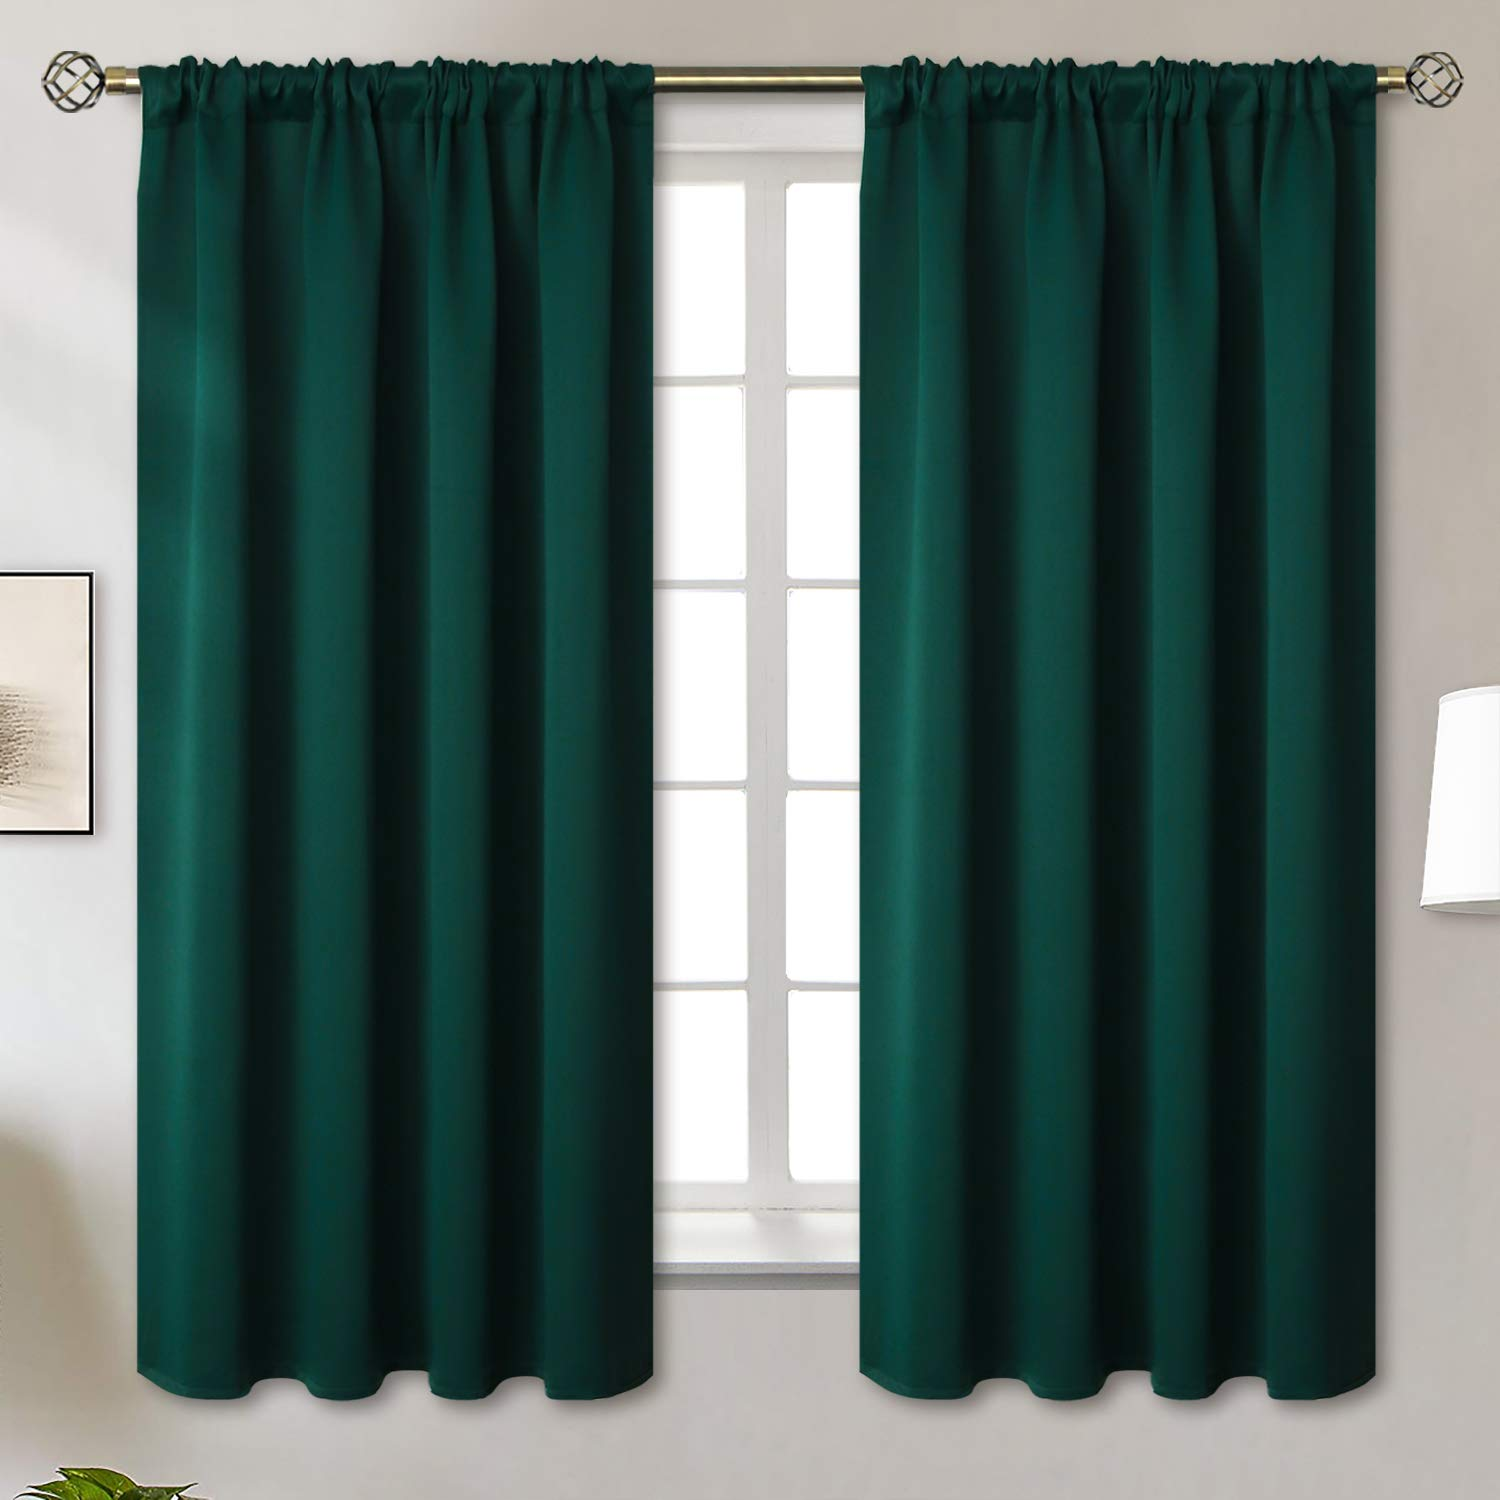 BGment Rod Pocket Blackout Curtains for Bedroom - Thermal Insulated Room Darkening Curtain for Living Room, 52 x 63 Inch, 2 Panels, Emerald